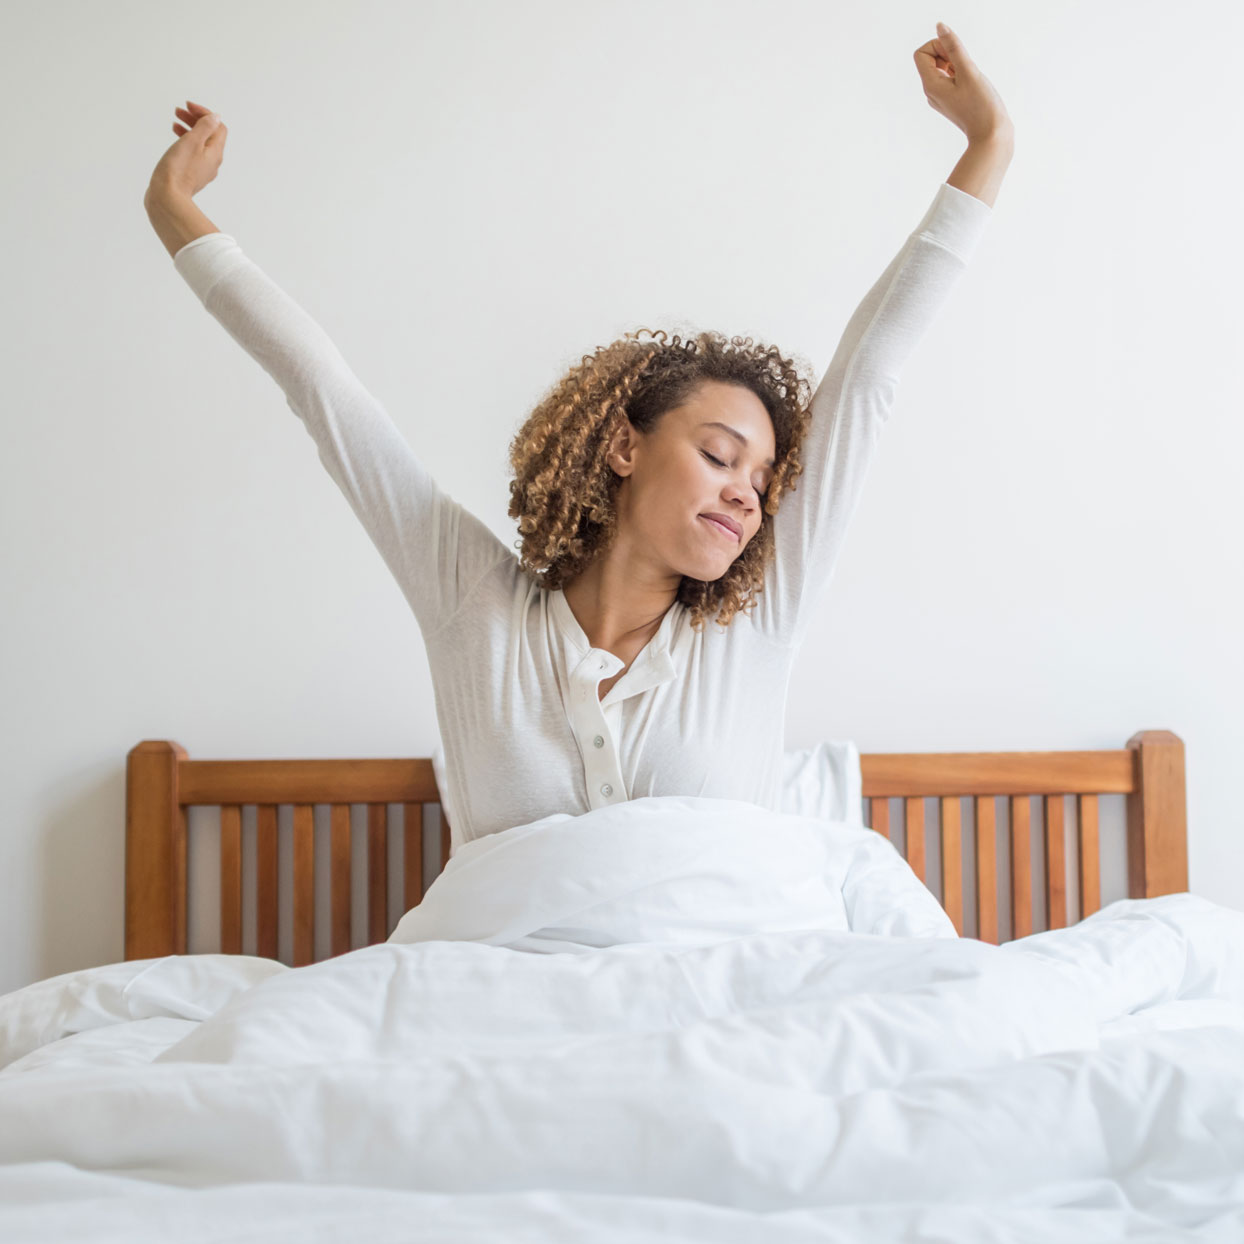 woman stretching after sleeping